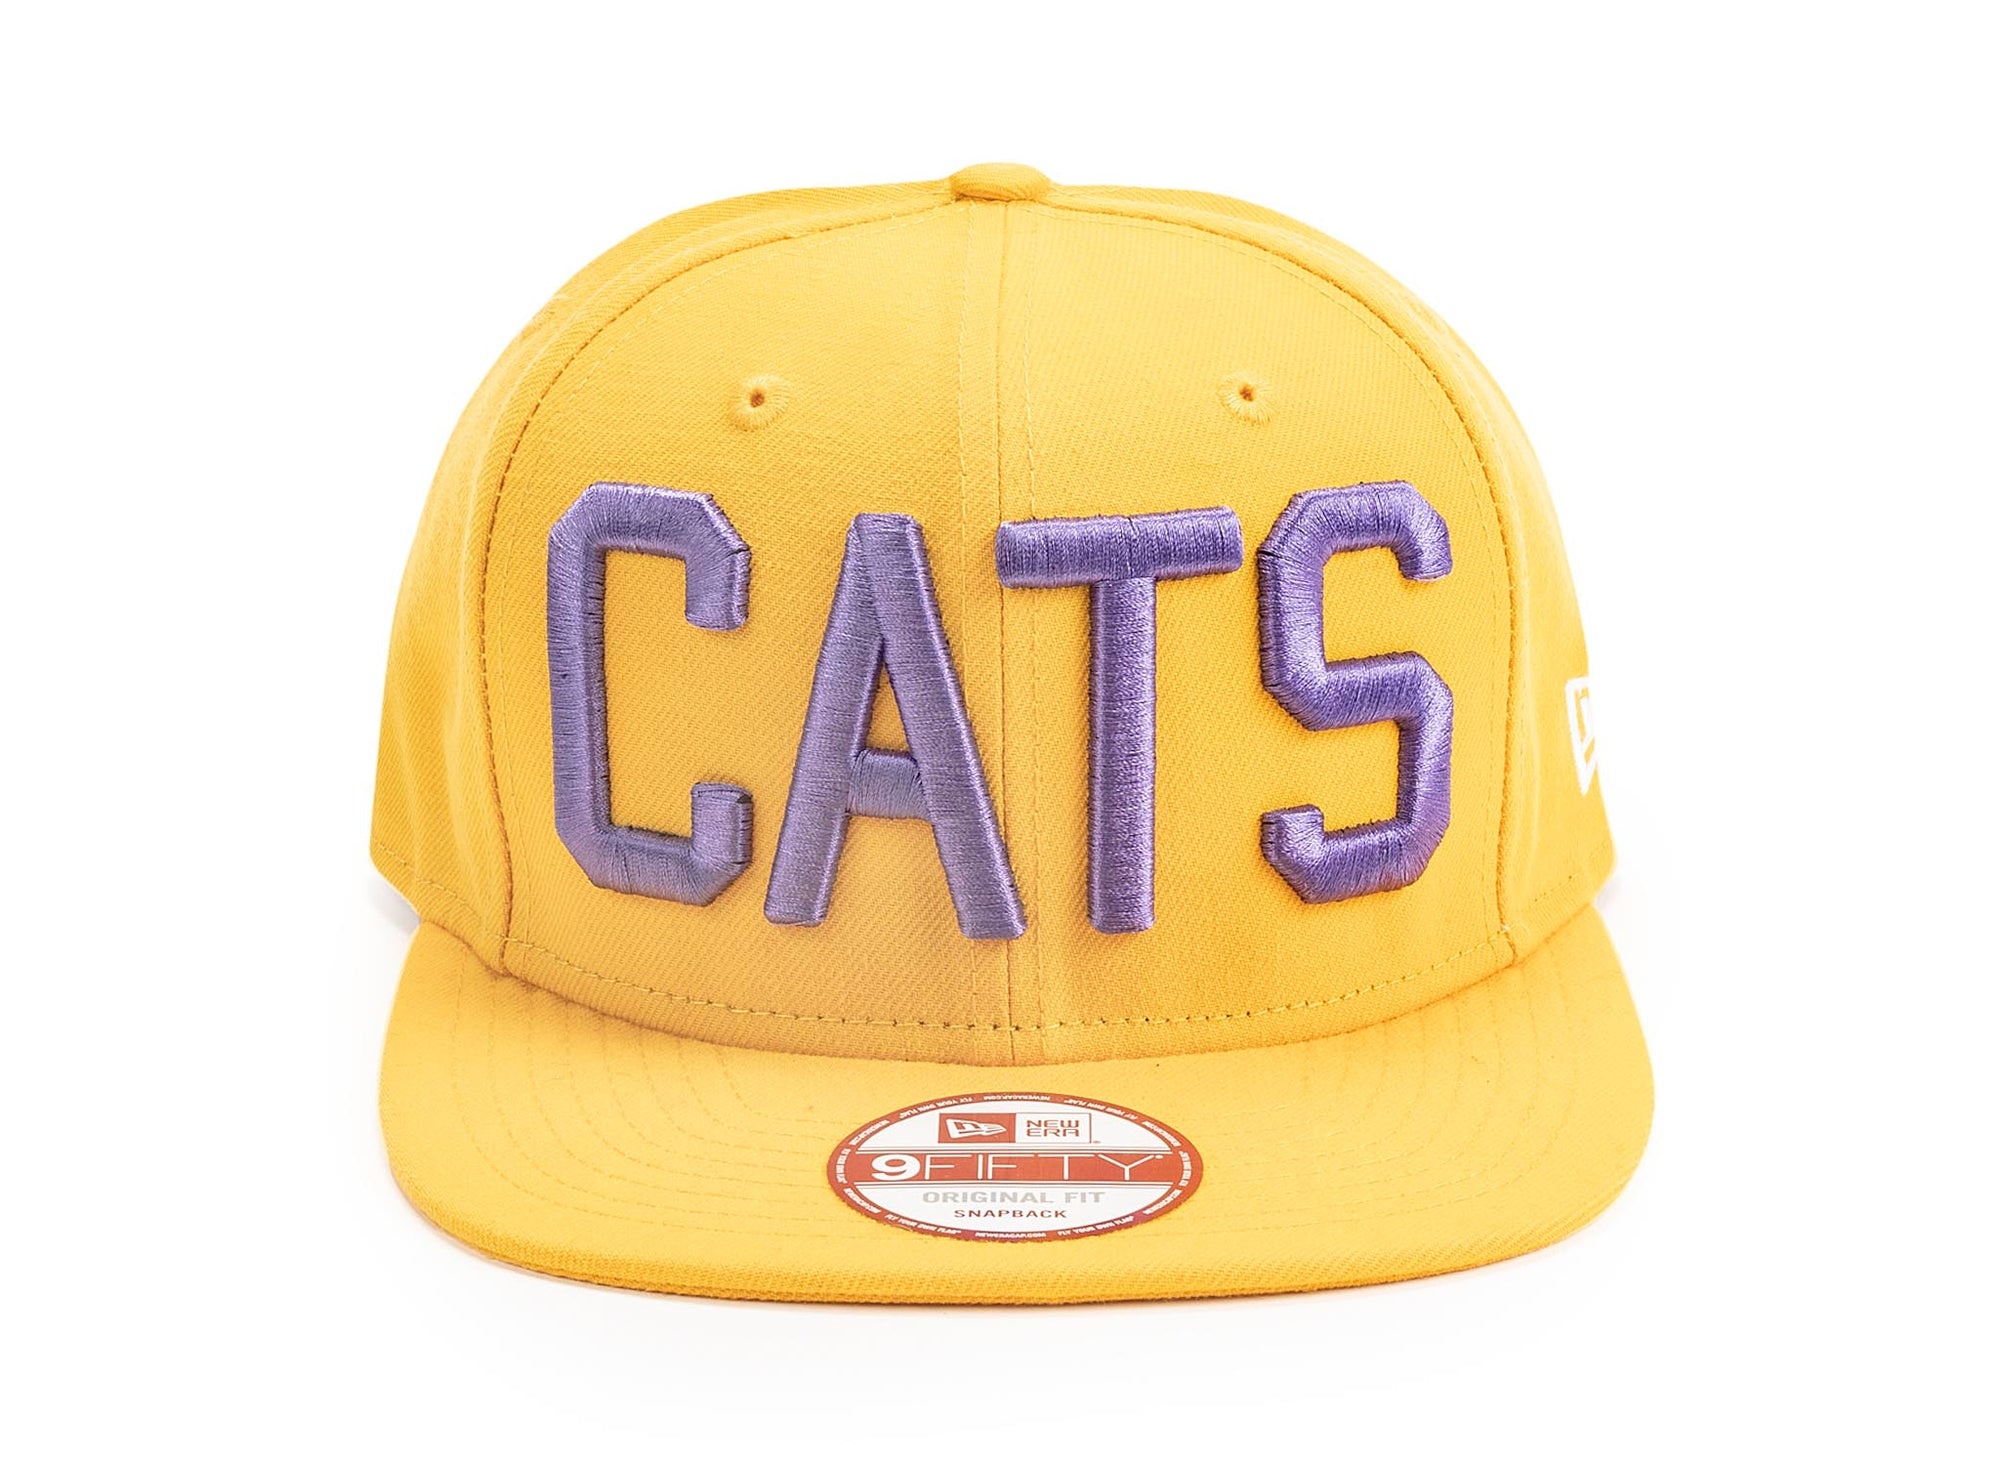 Oneness OG Cats Snapback Hat 'Lakers'